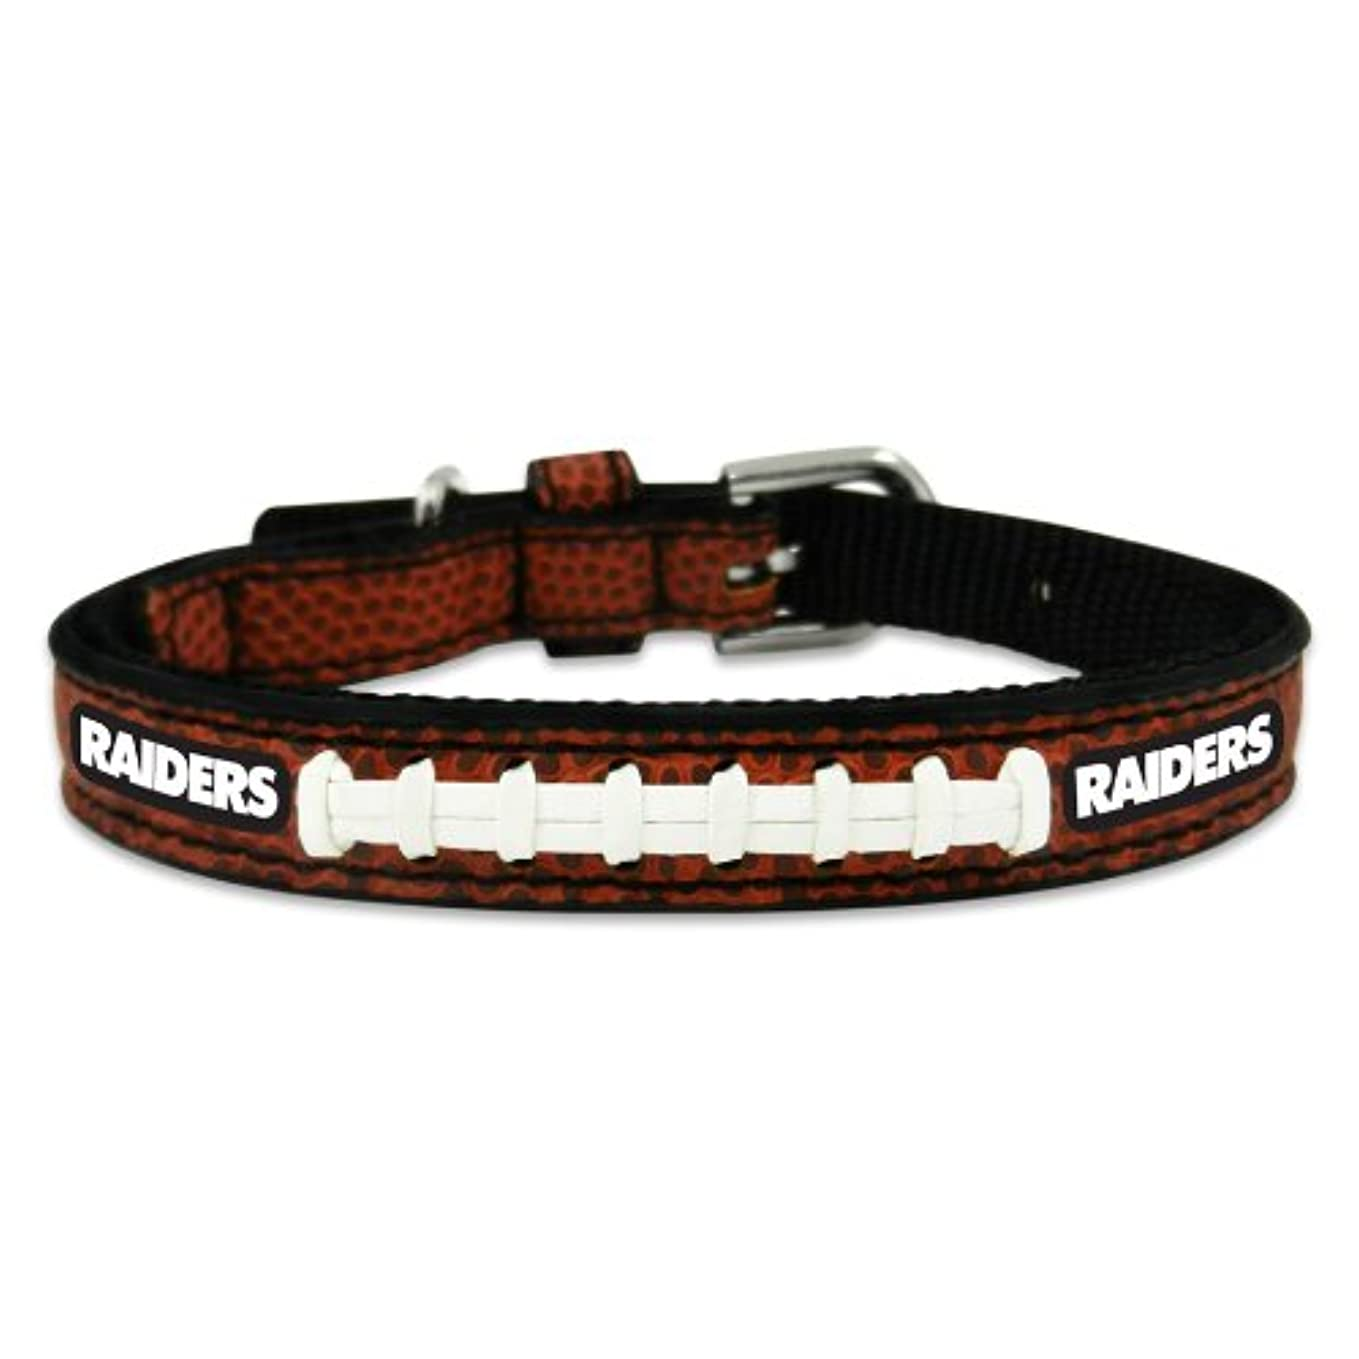 好奇心盛偽善汚れるOakland Raiders Classic Leather Toy Football Collar